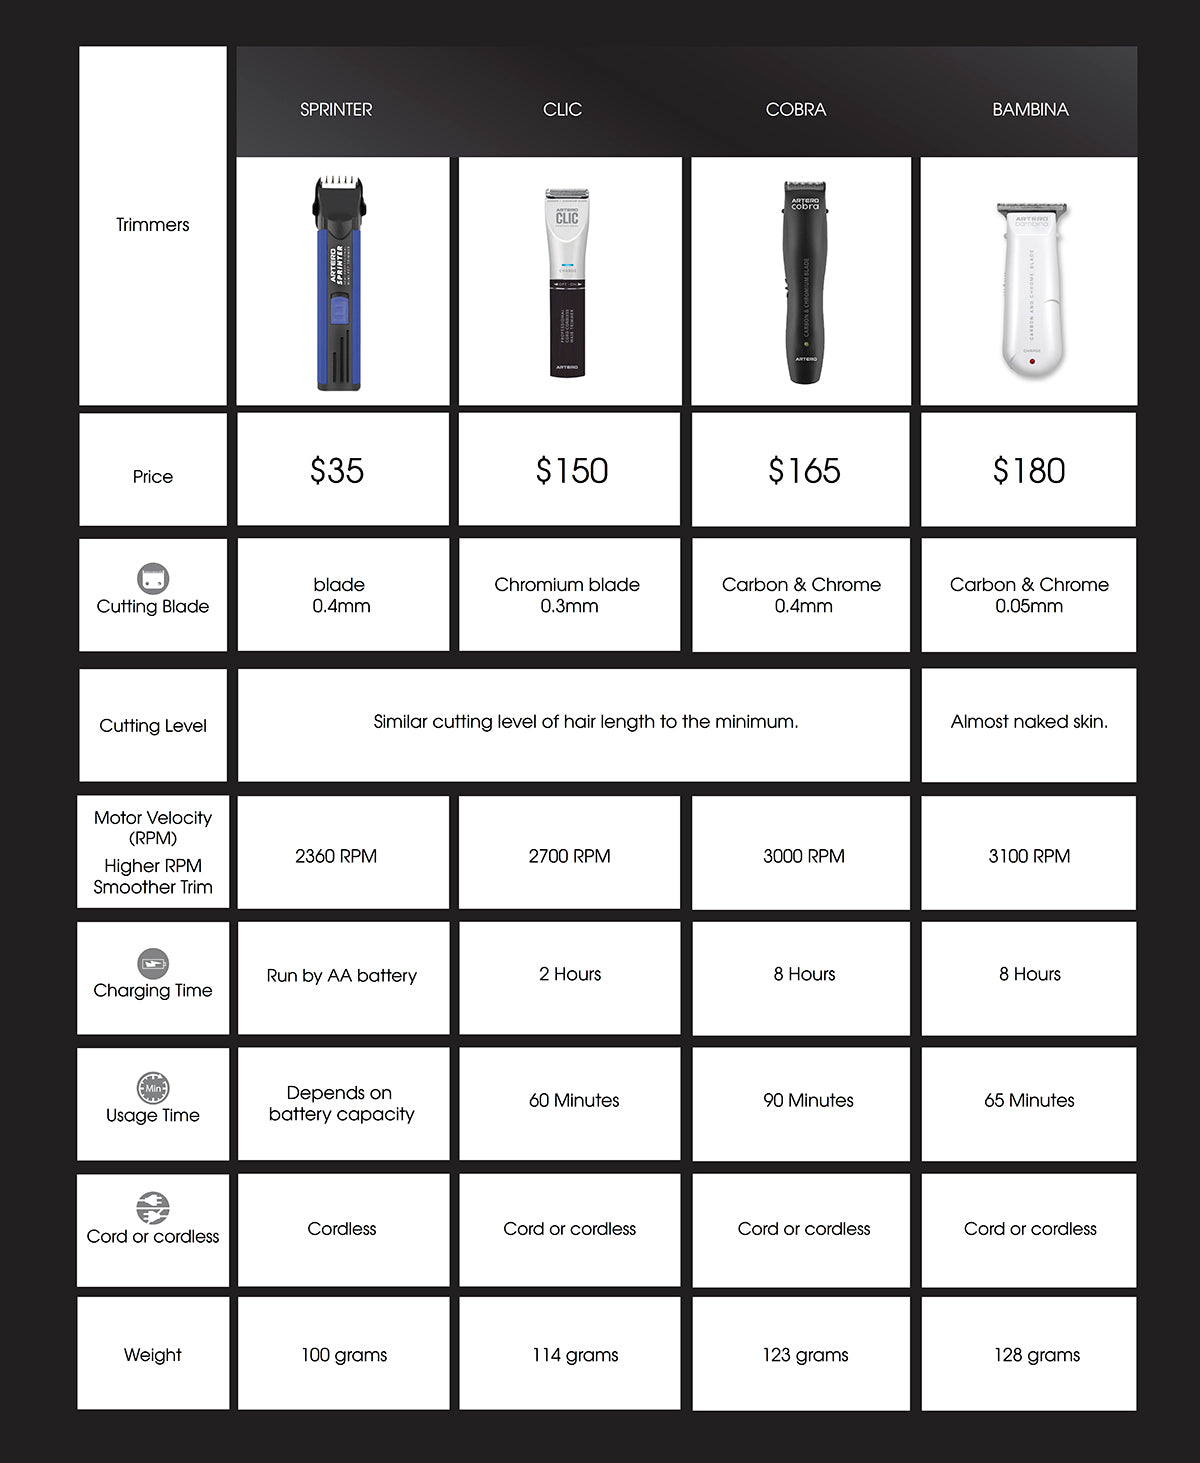 Trimmer Comparison Table